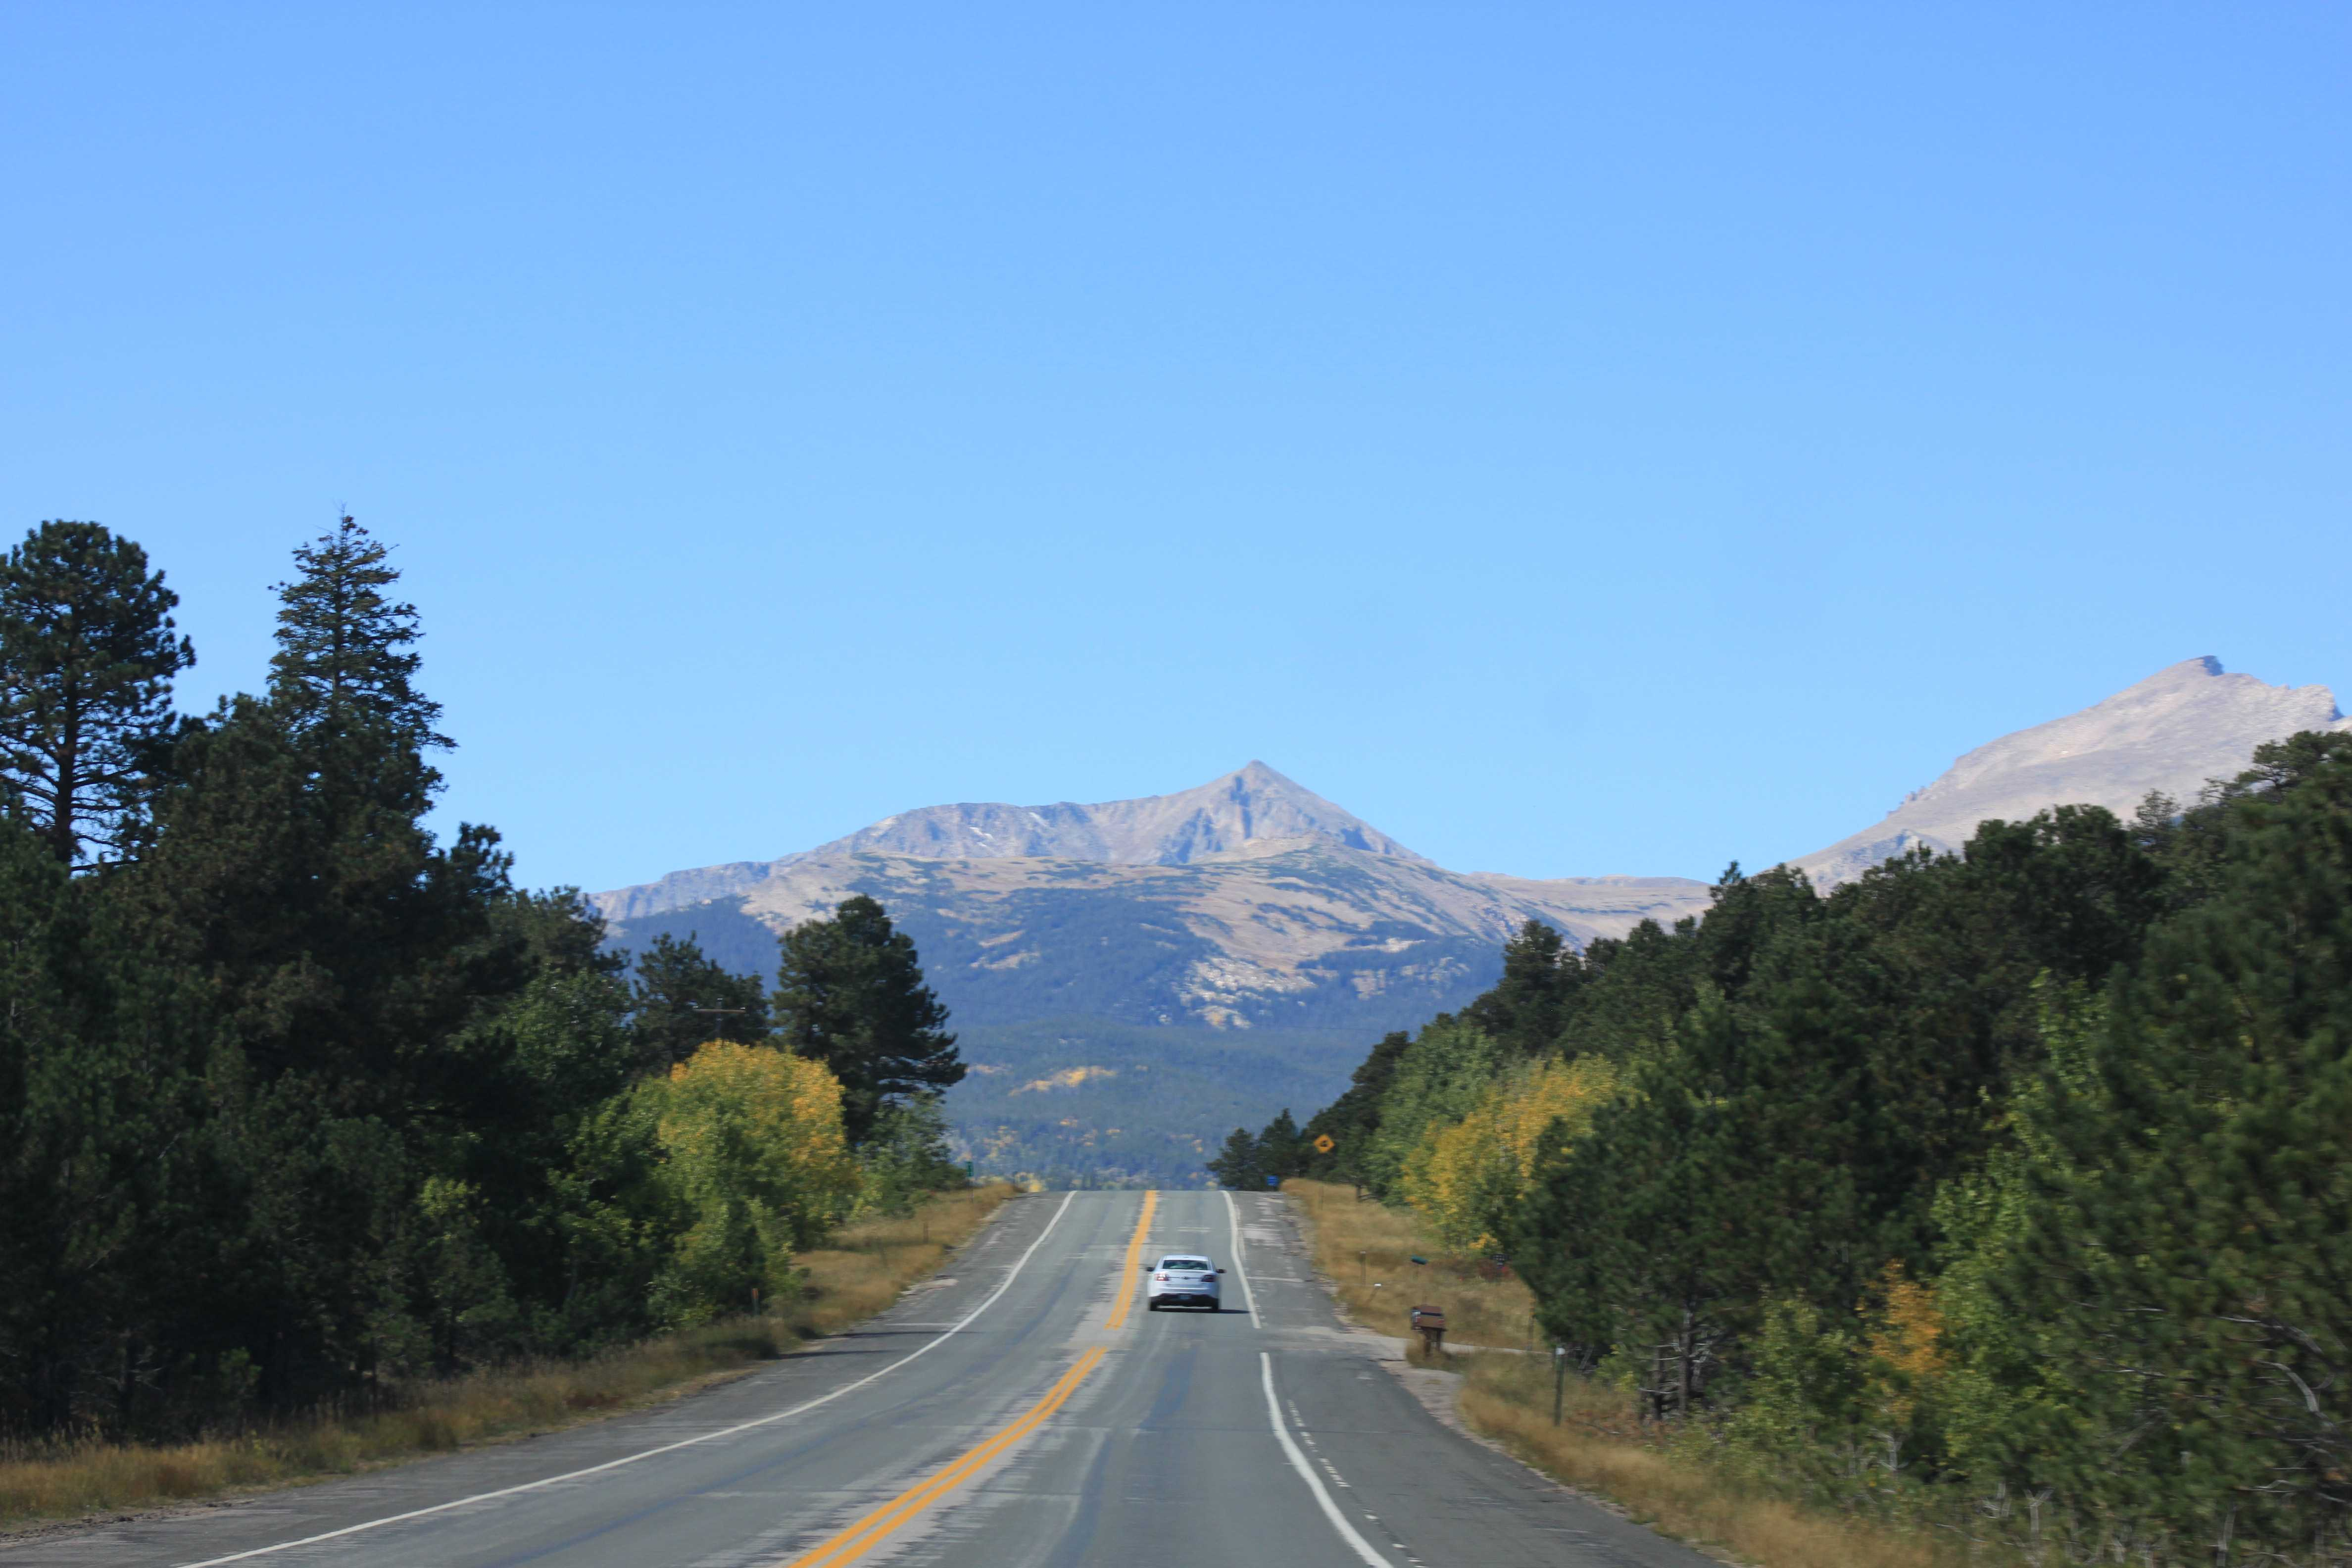 Featured Drive: Peak to Peak Scenic Byway